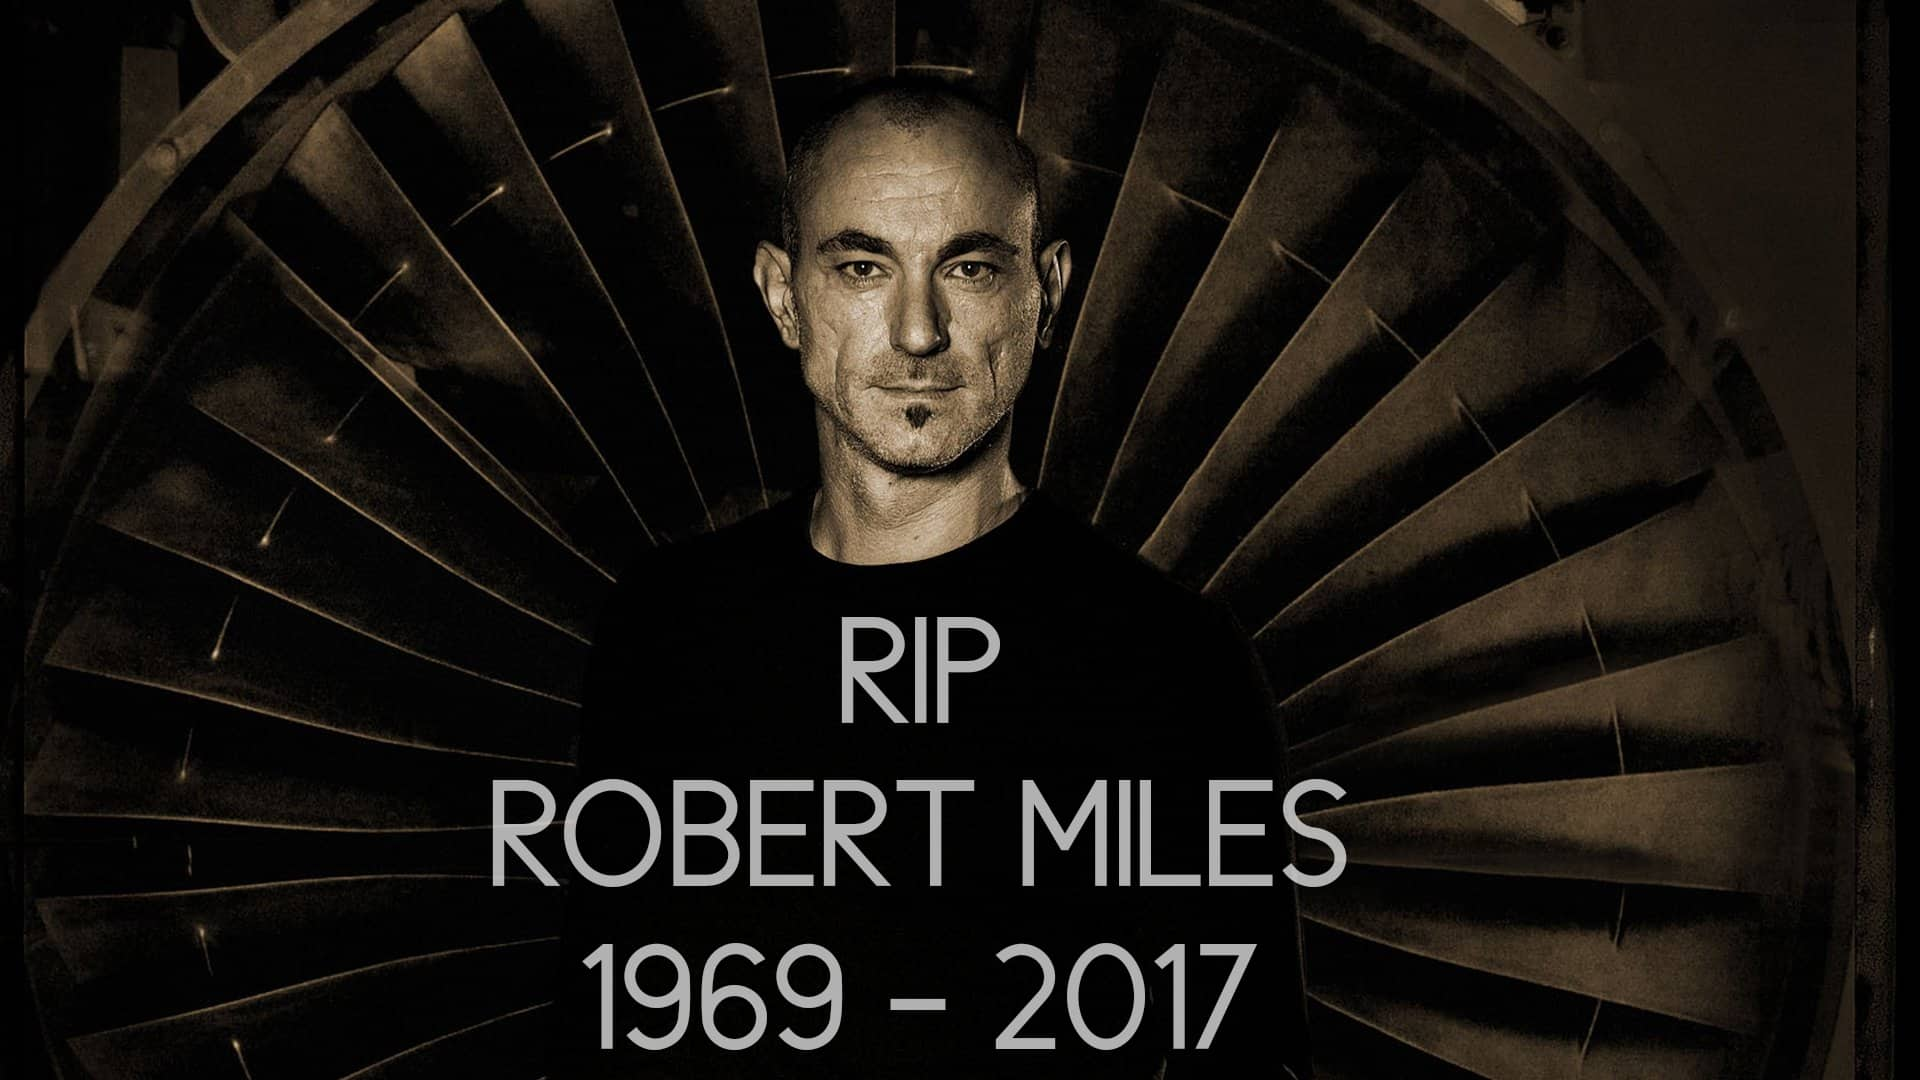 Robert Miles, you will be missed! RIP!